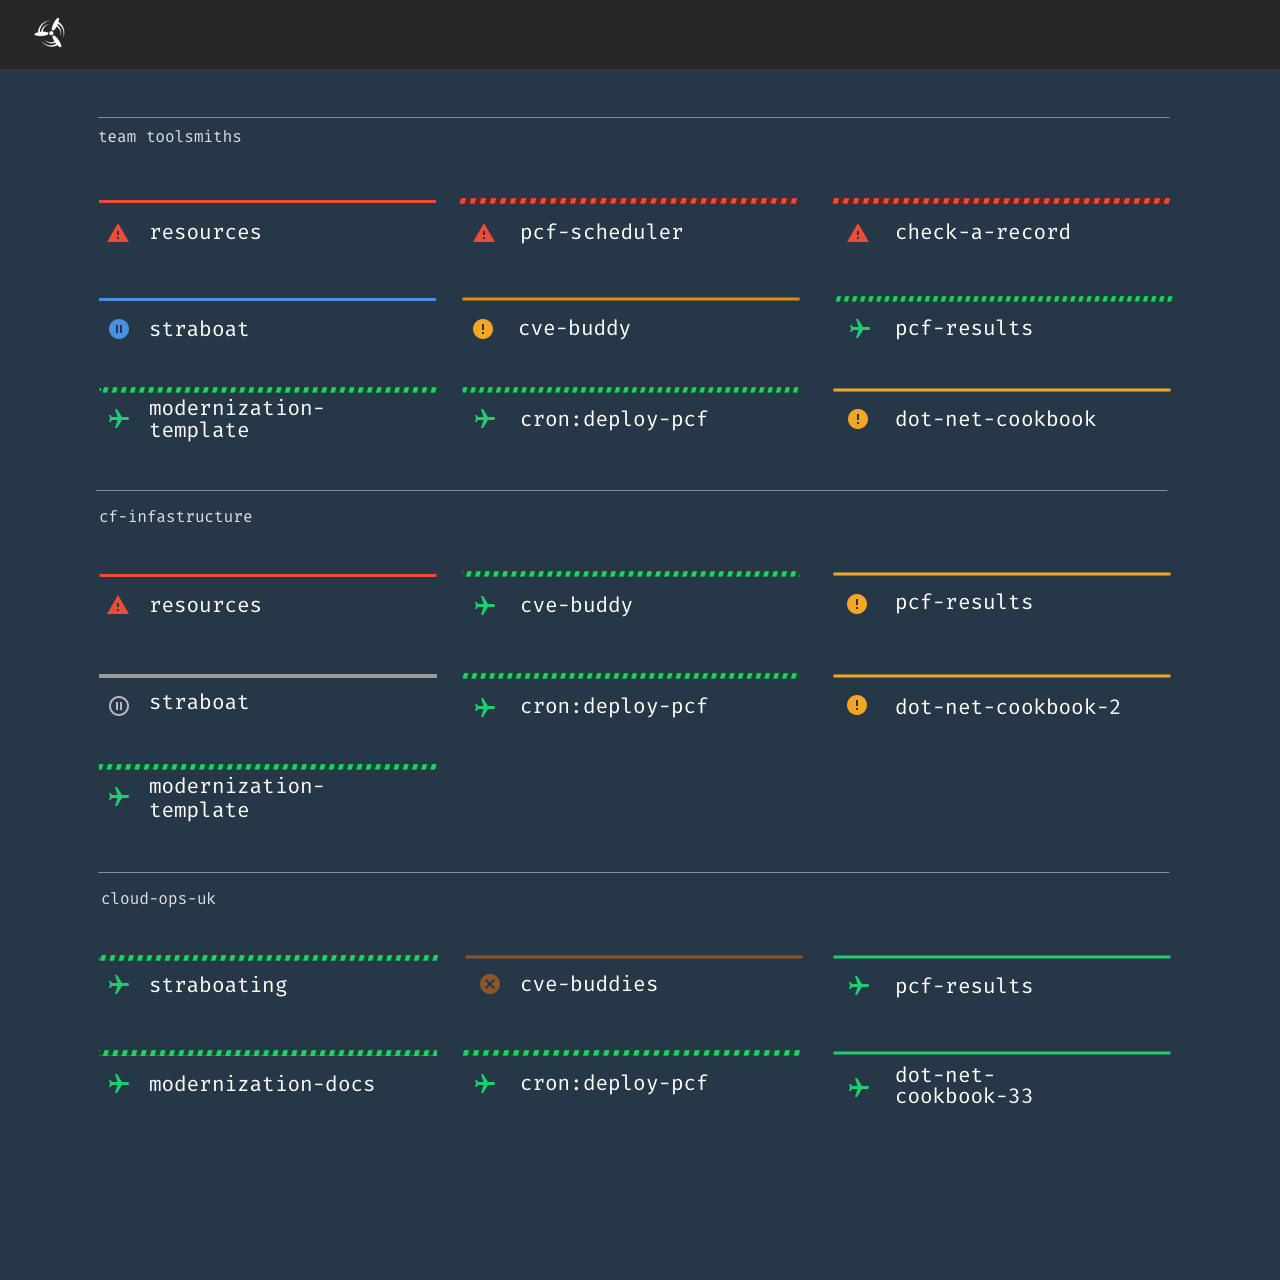 dashboard_by_team_red_green_states_p1_1442